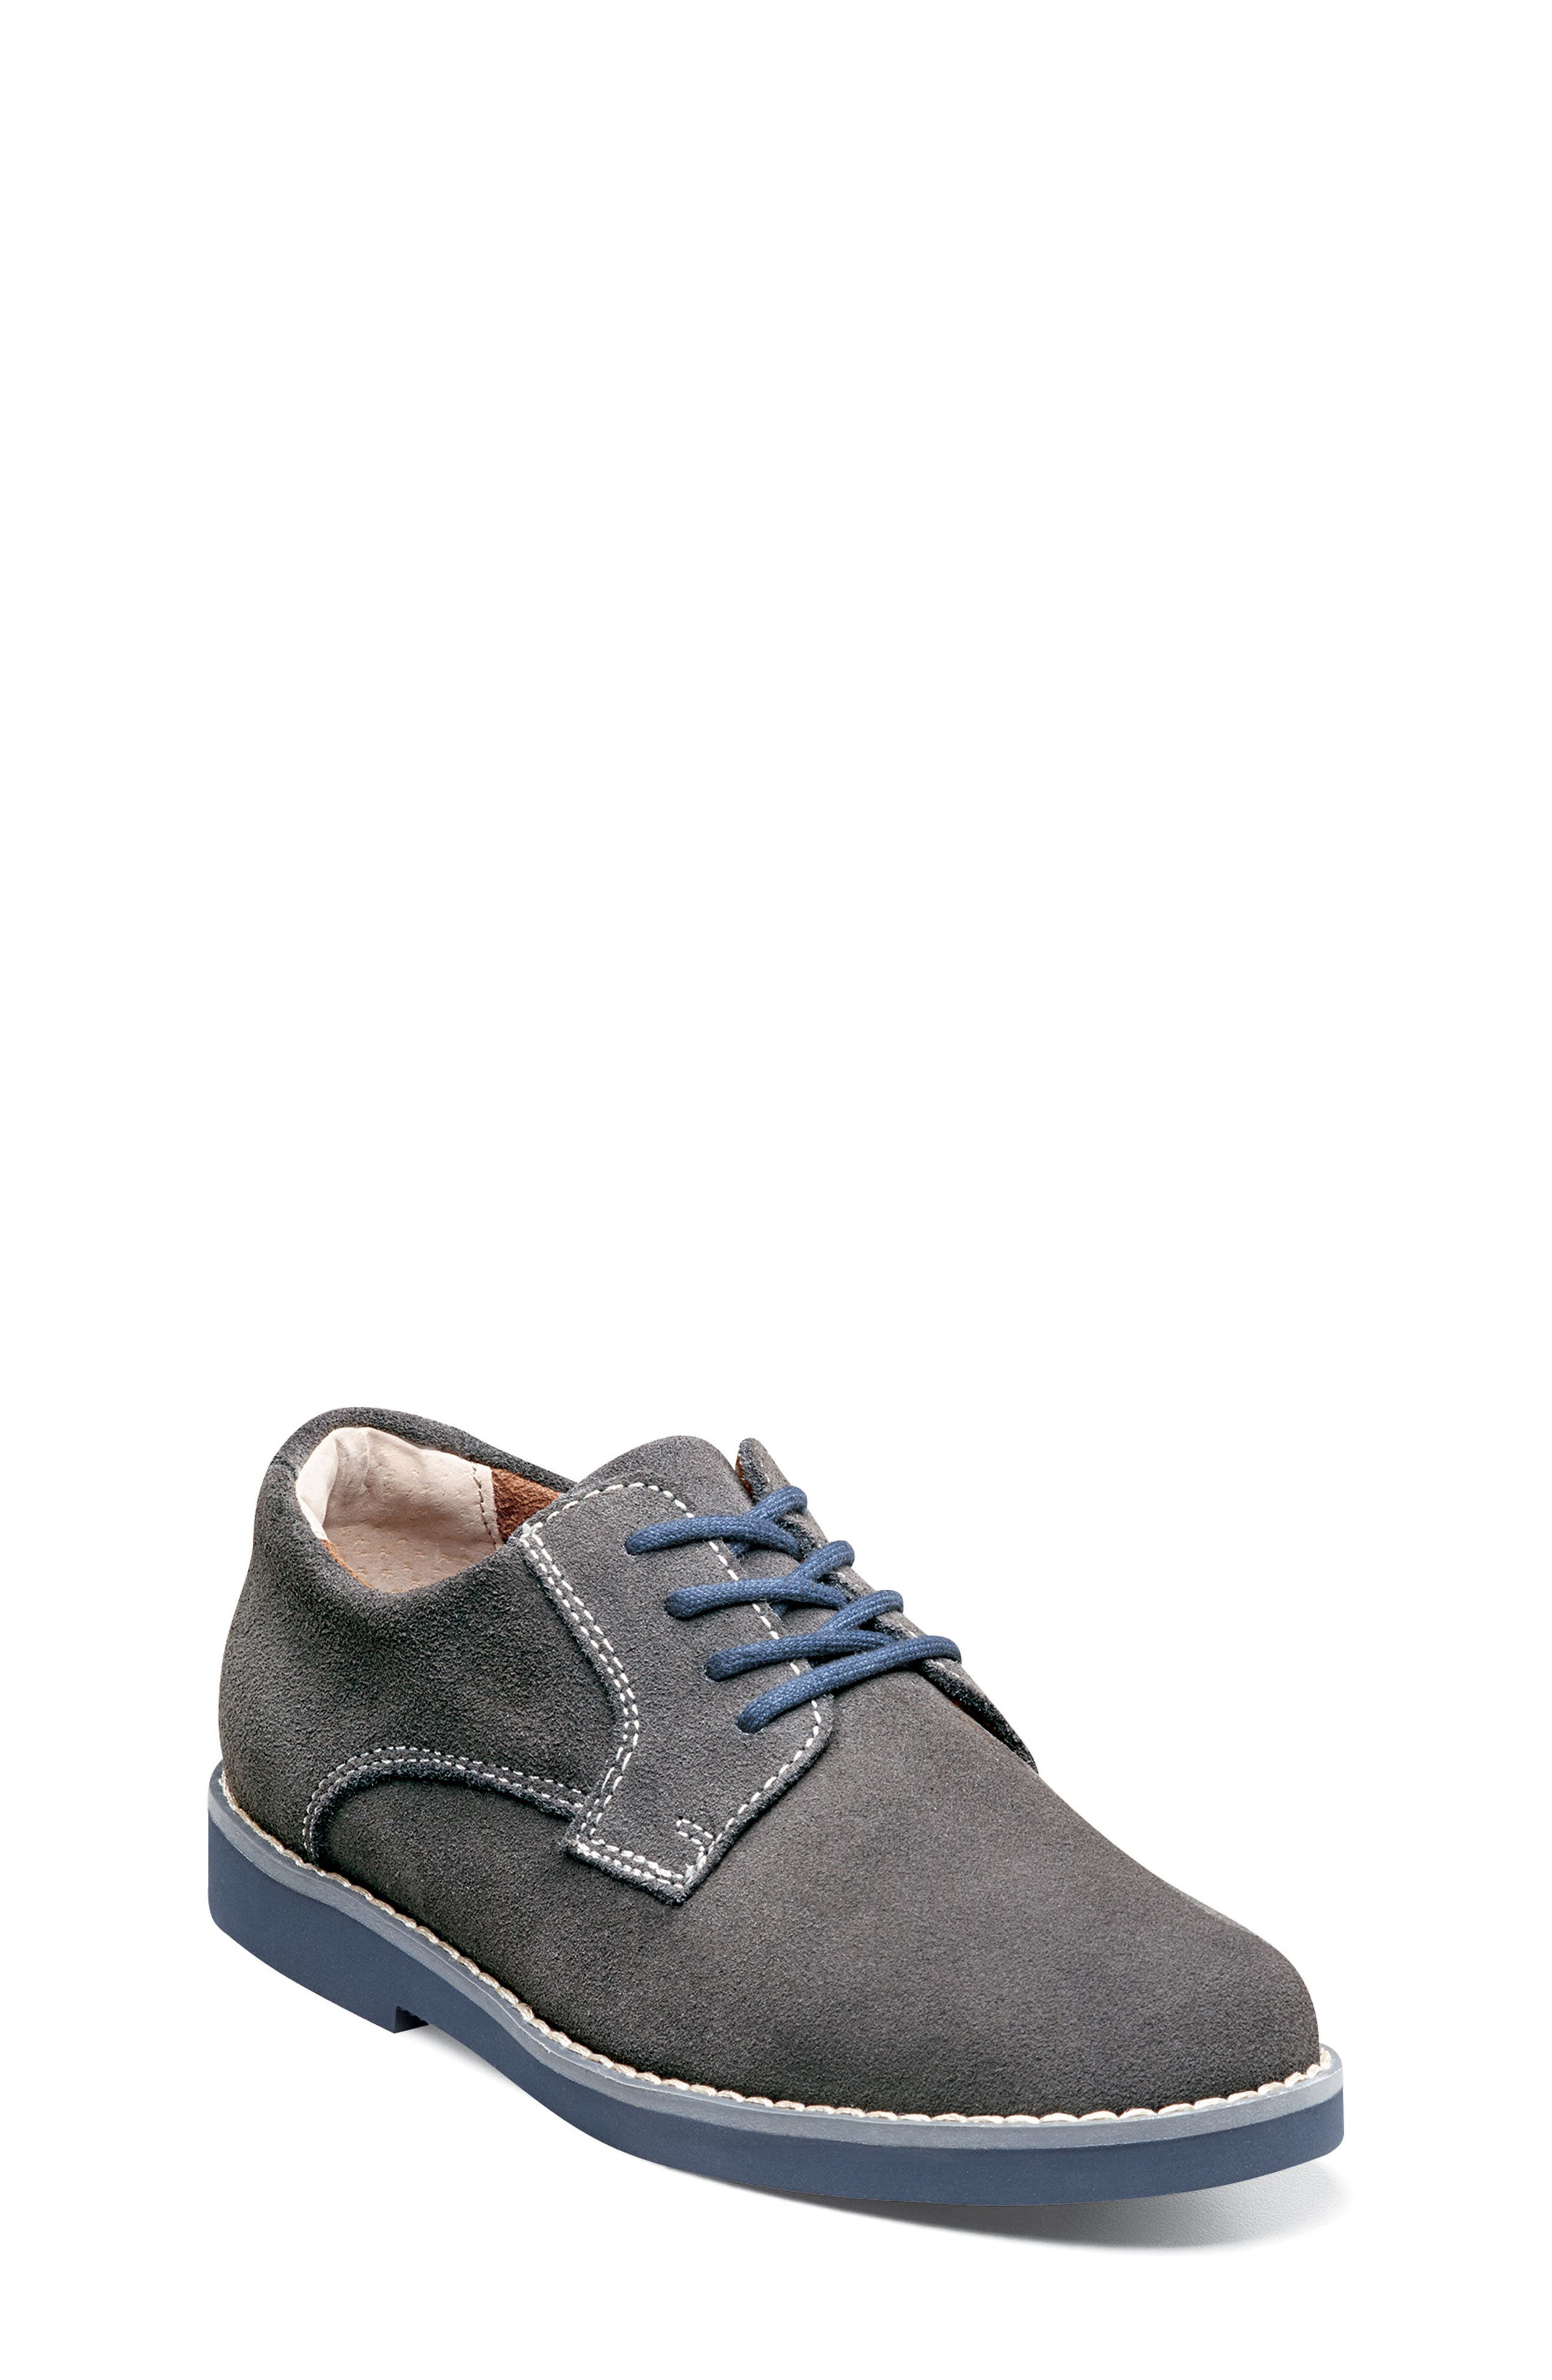 Kearny Two Tone Oxford,                             Alternate thumbnail 2, color,                             GREY/ NAVY SOLE